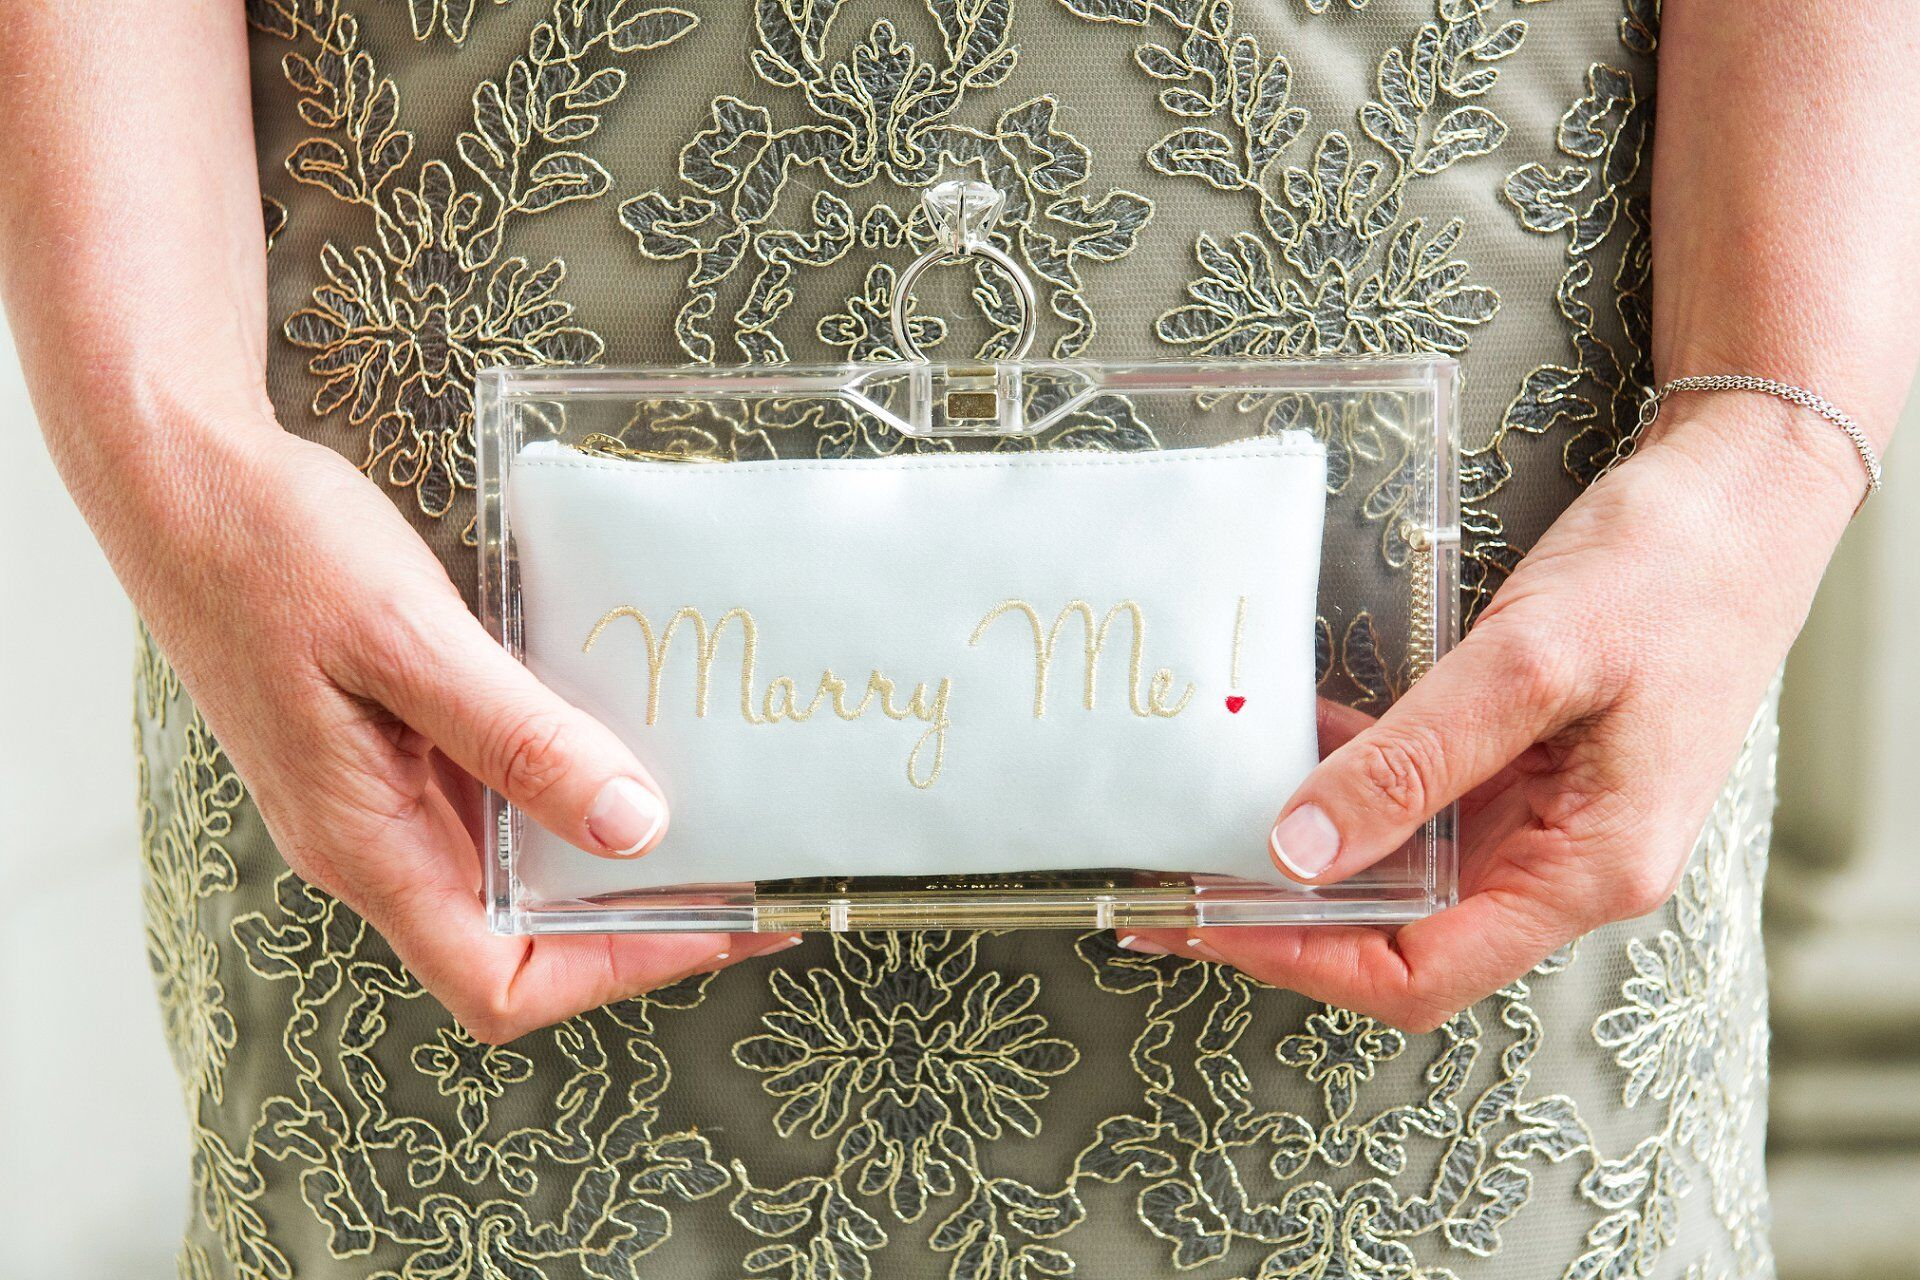 bride holding a charlotte olympia marry me clutch with engagement ring closure westminster register office wedding photography by emma duggan